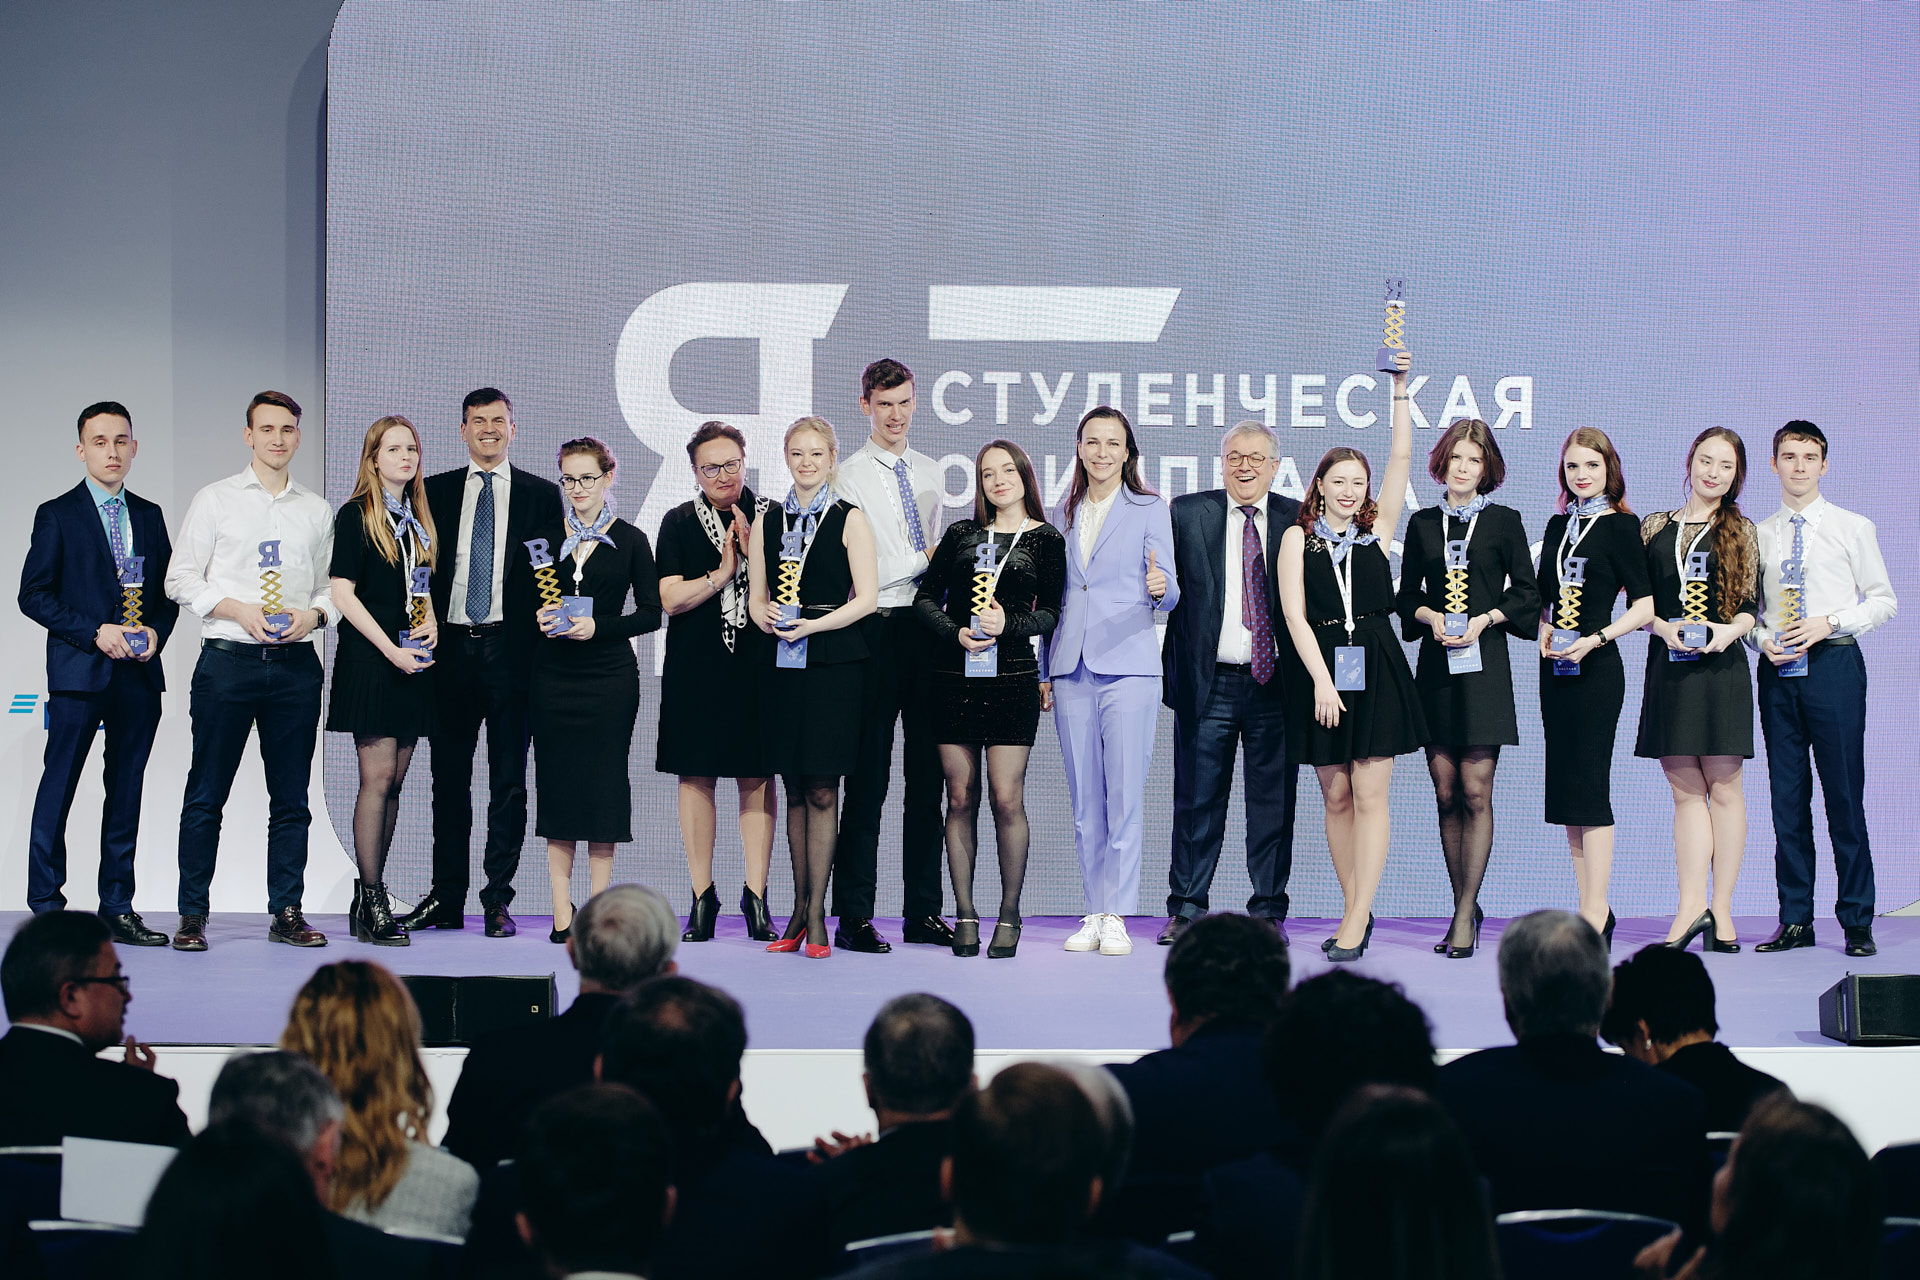 Awarding of medalists, winners and prize-winners last year took place in Moscow. Approximately 3500 people received prizes